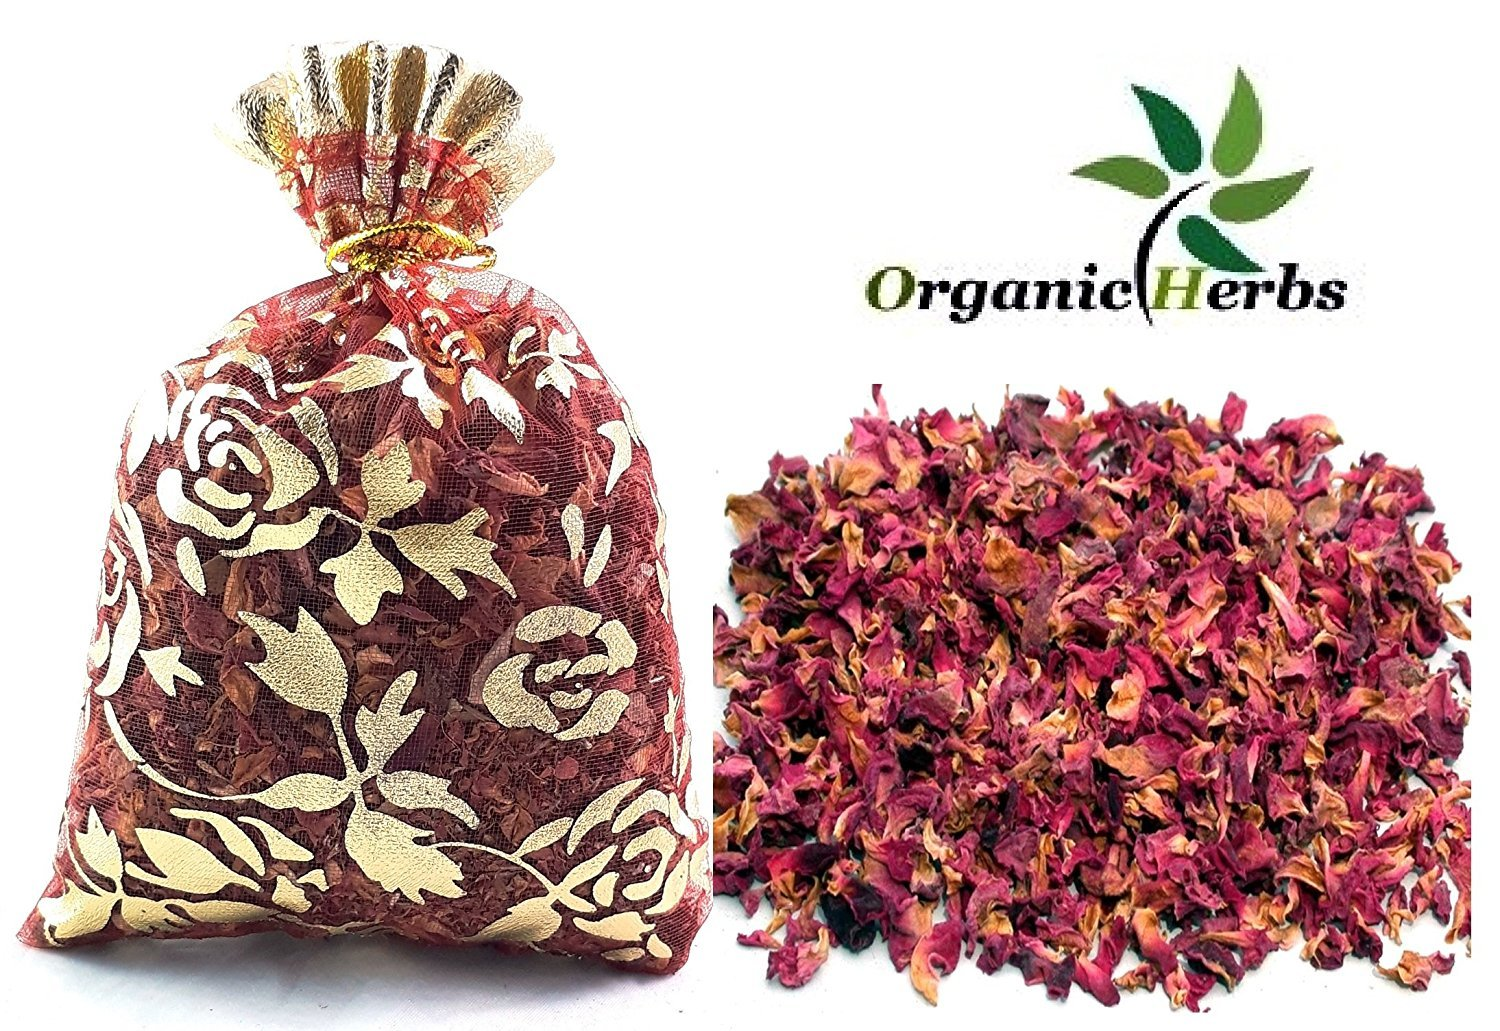 Organic Herbs (Pack of 100) 20g DRIED ROSE PETALS Potpourri Decor Organic Herbal Craft Car Perfume